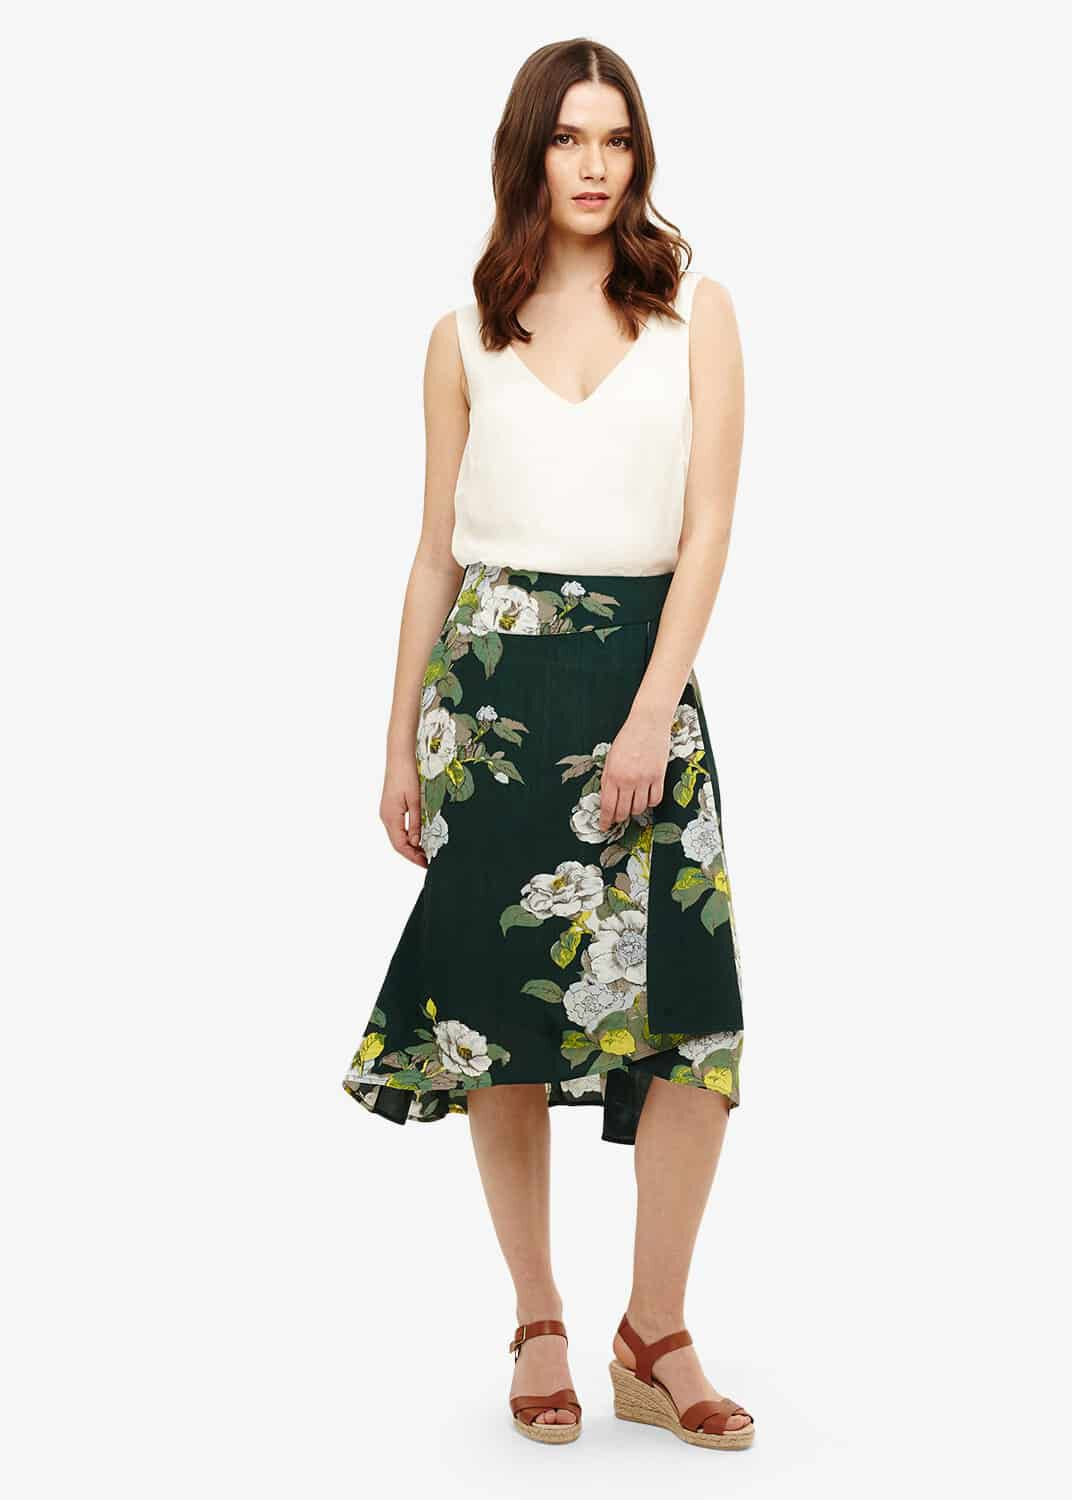 Phase Eight Chrissy Botanical Print Skirt, Green, Below Knee Skirt